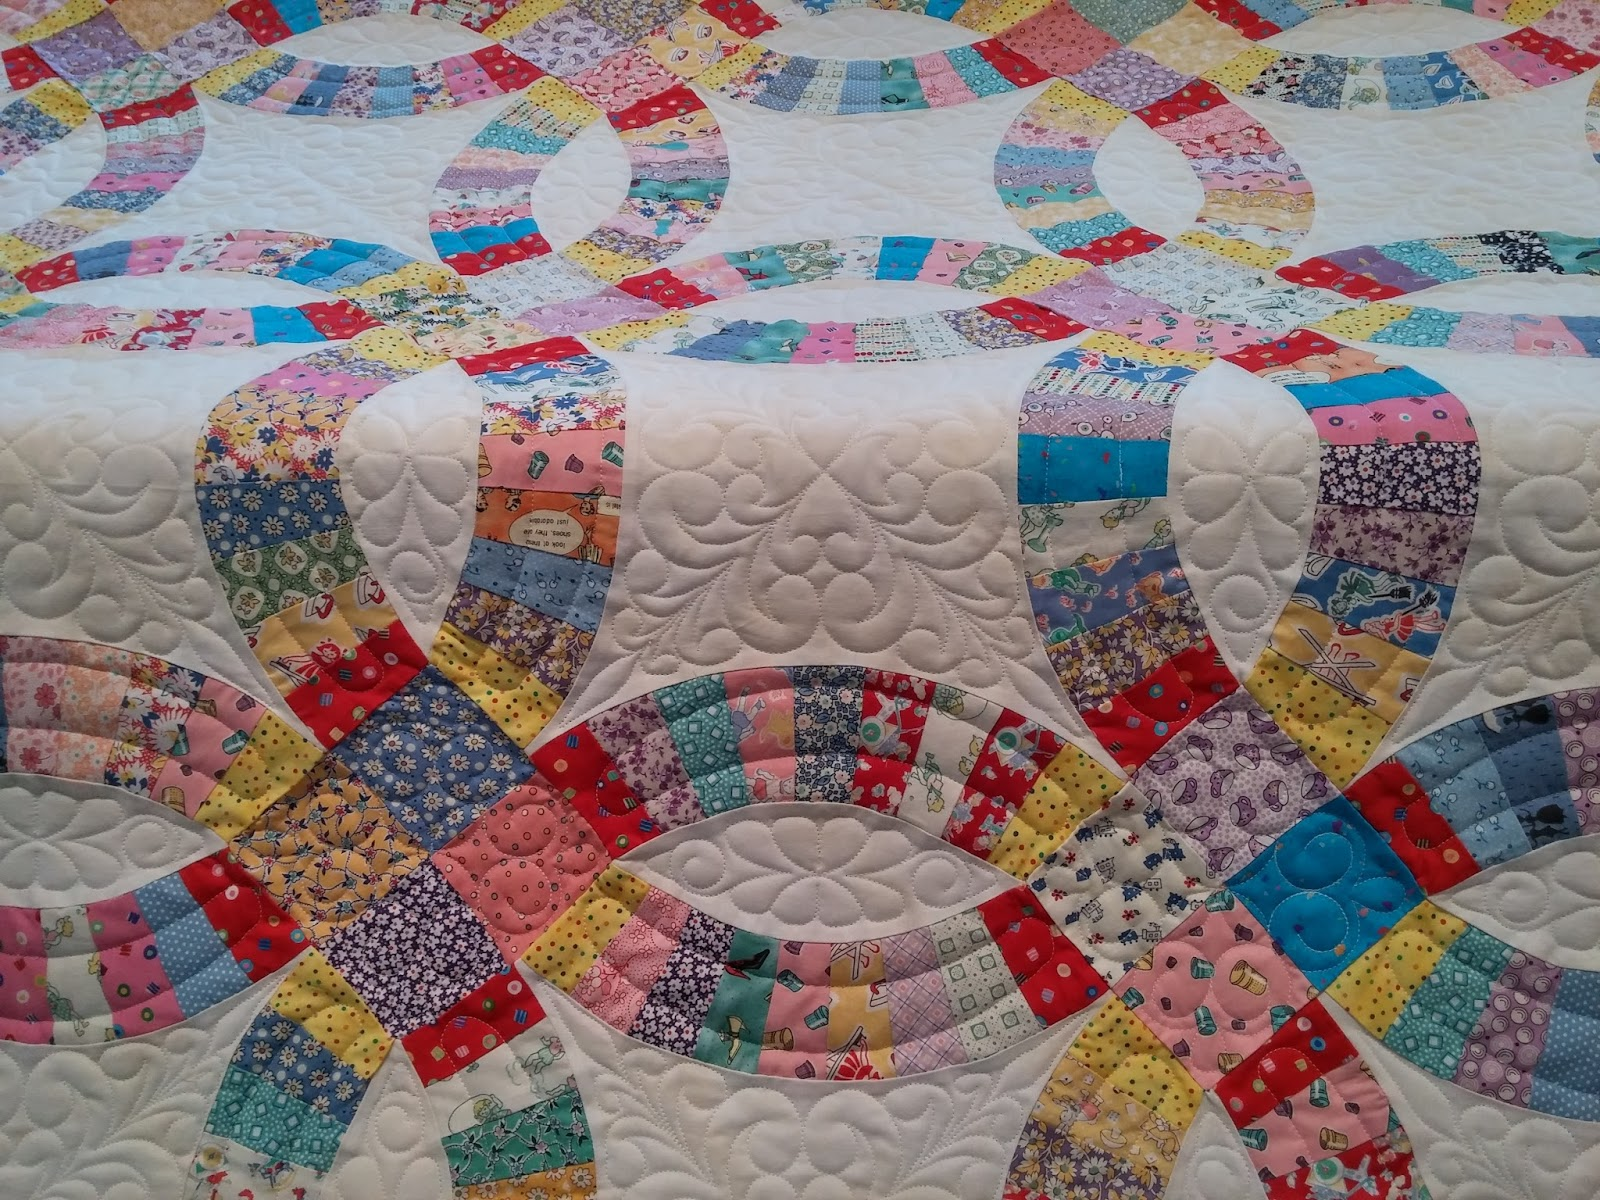 Double Wedding Ring Quilt.Double Wedding Ring Quilt That I Quilted On My Longarm